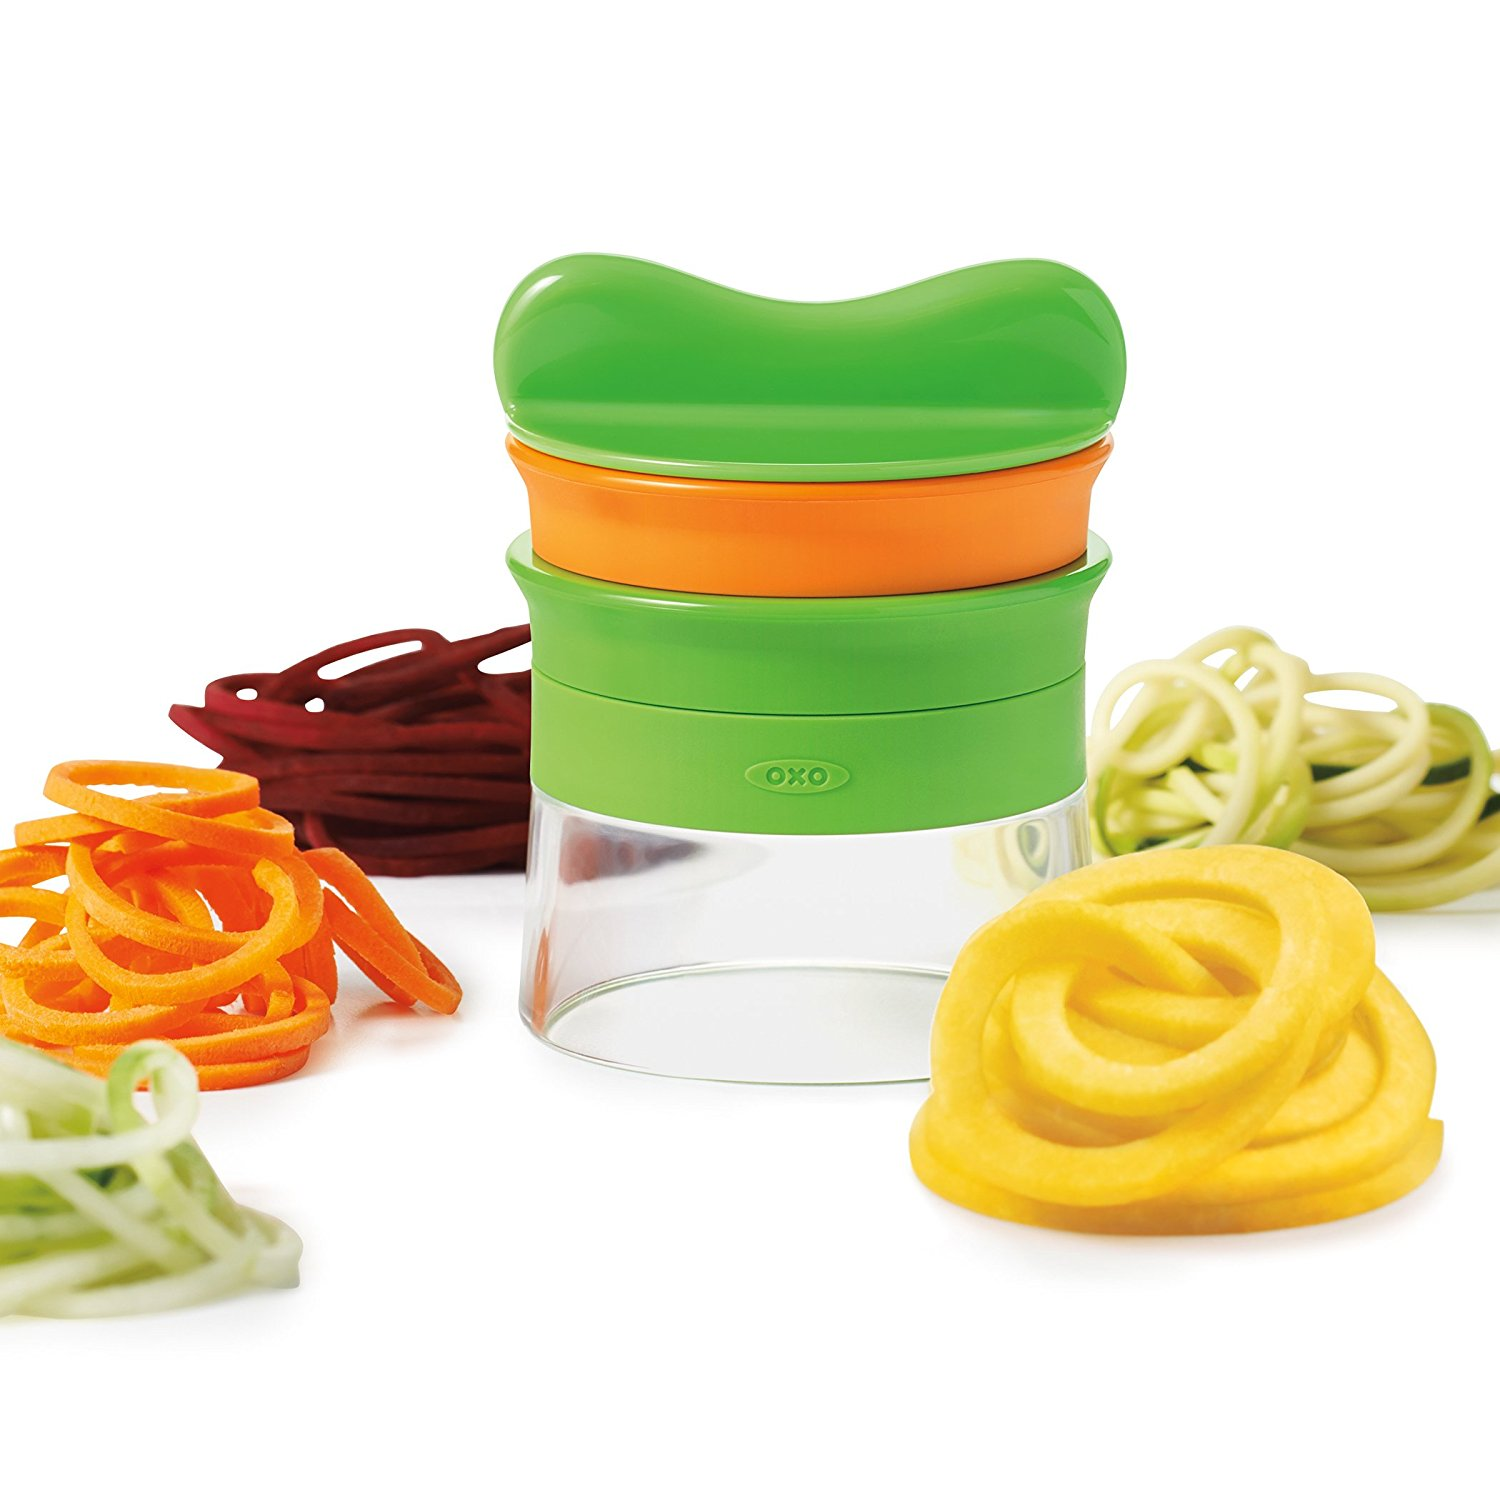 Fun kitchen gadgets at Amazon Prime for under $20 that we're totally here for: OXO 2-Blade Spiralizer | Cool Mom Eats